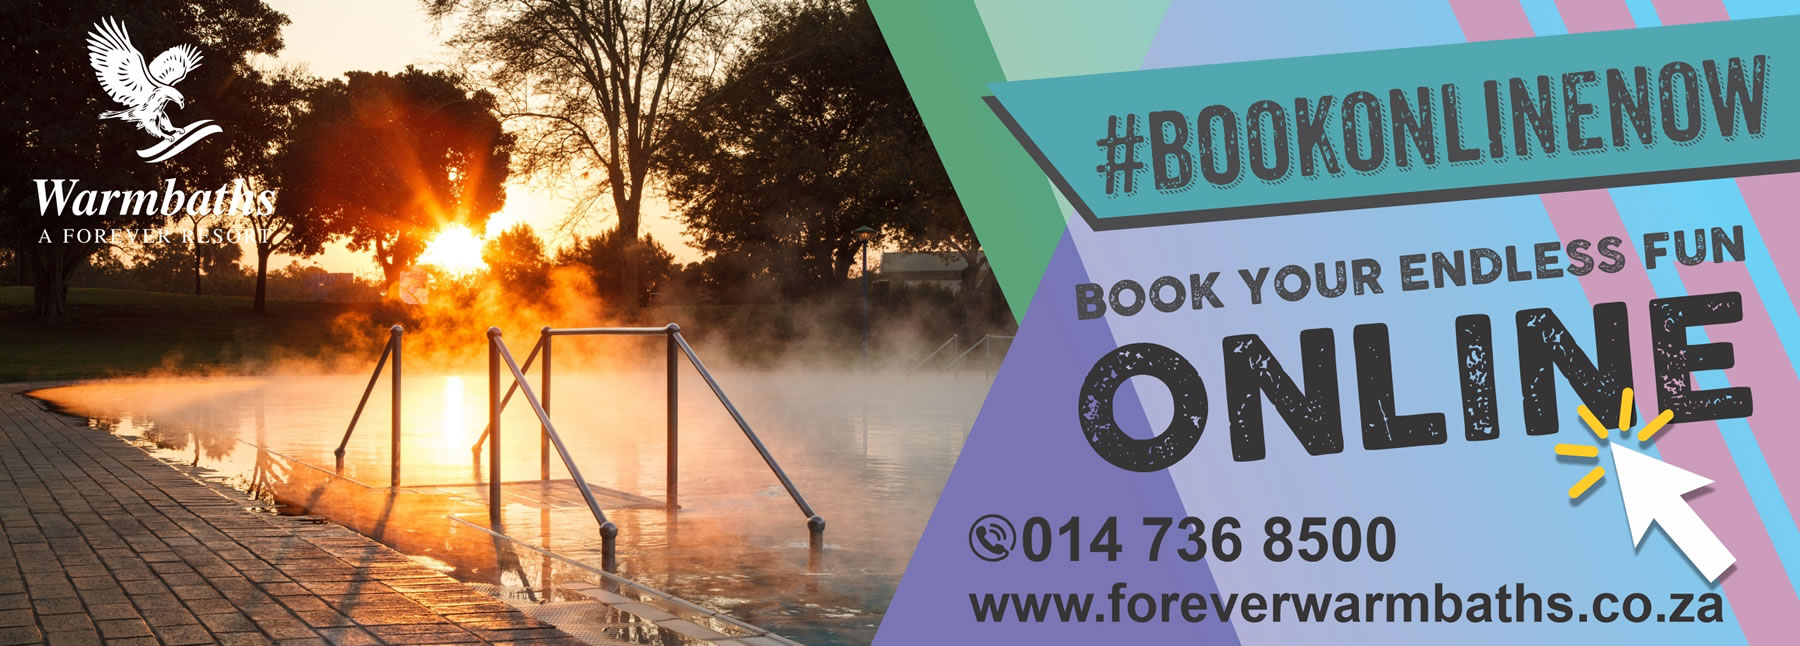 Book now at Warmbaths, a Forever Resort